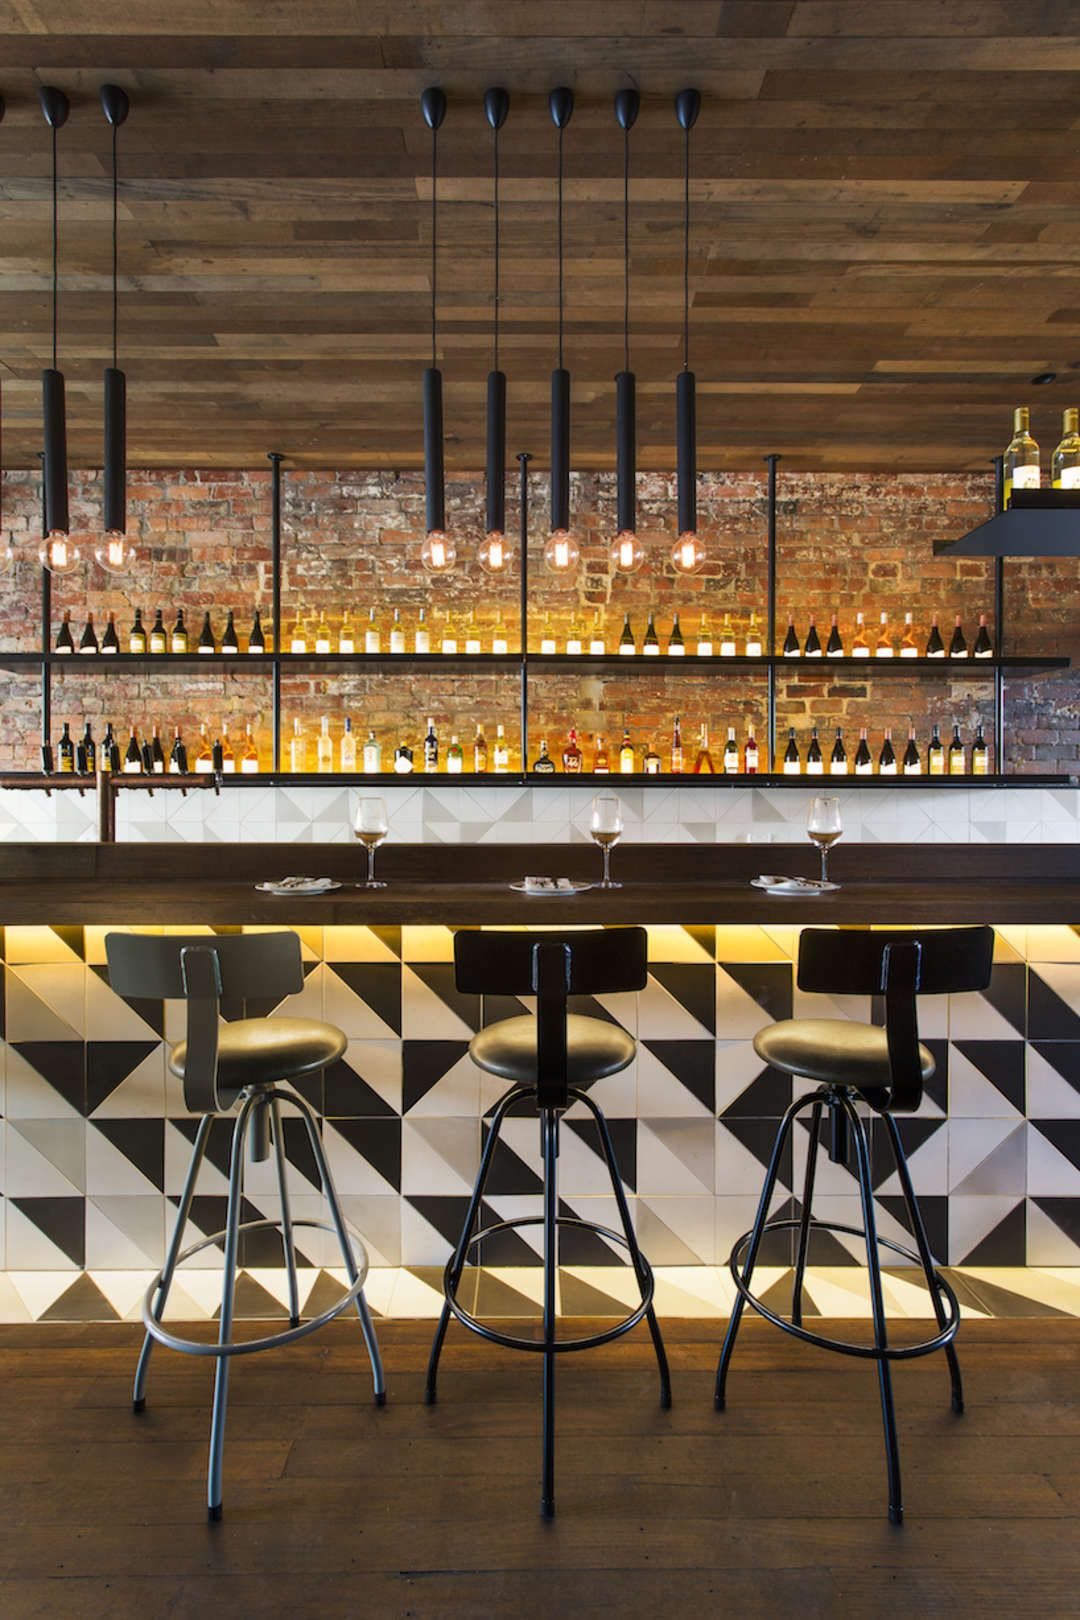 Why Not Unwind at One of These 7 Wine Bars - Architizer   Restaurant ...